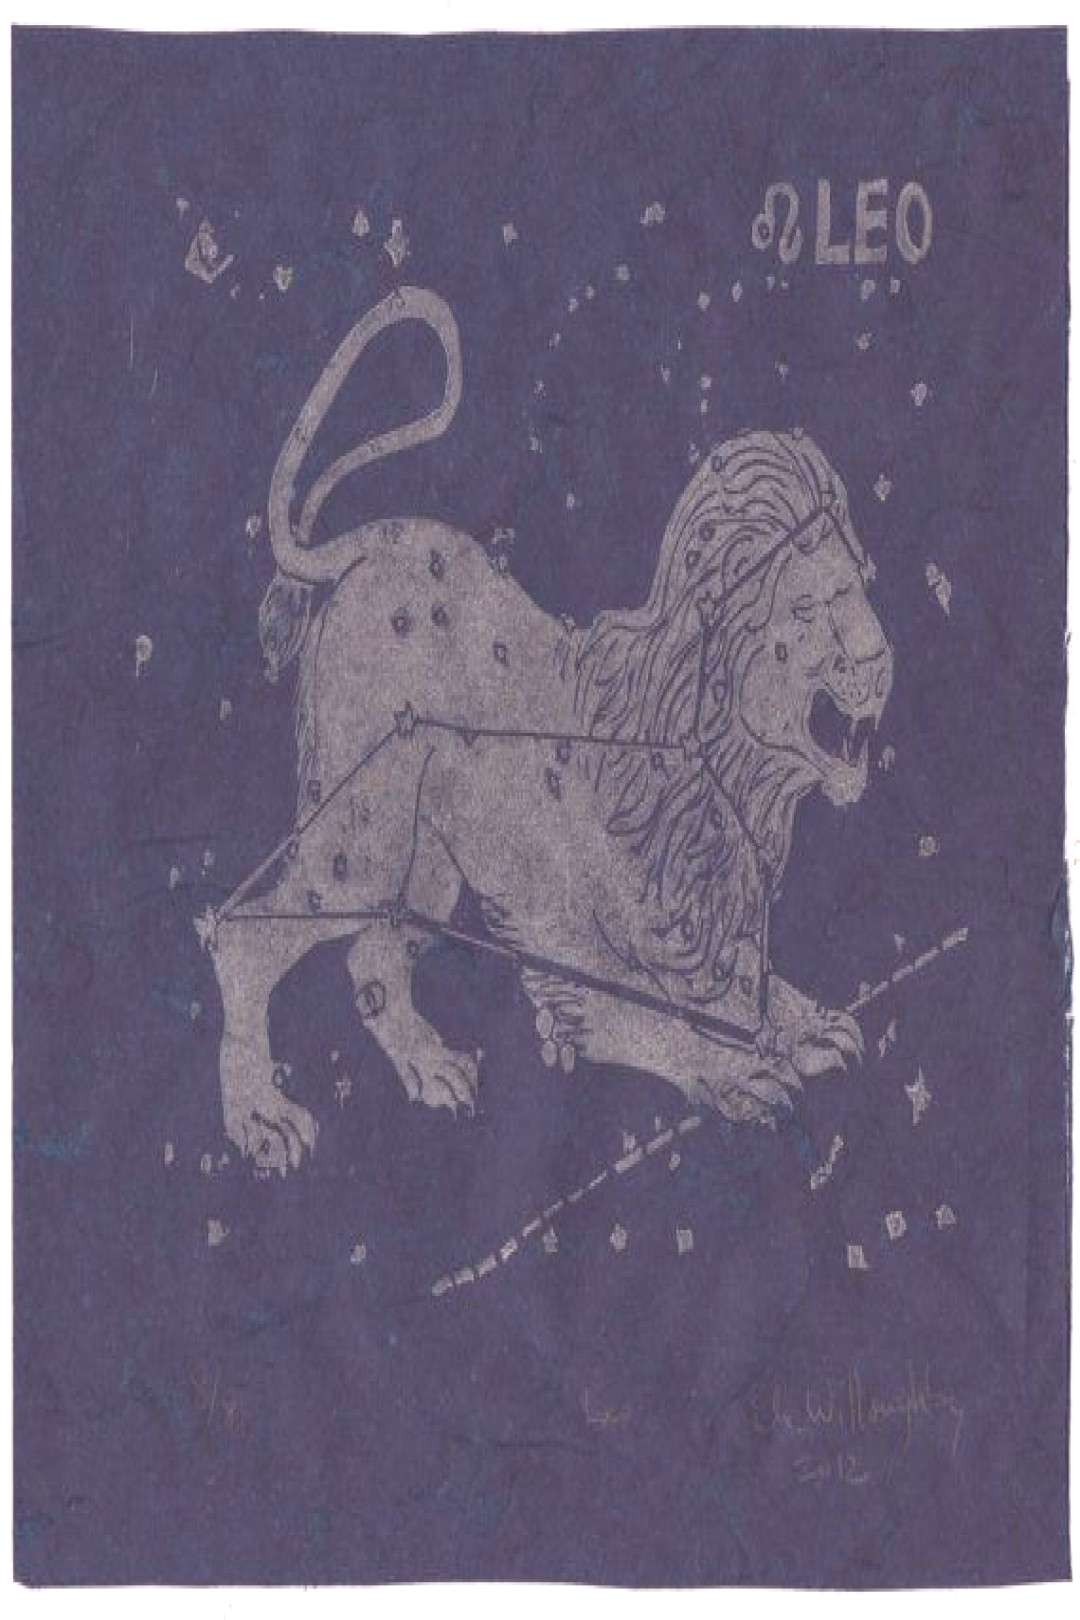 Leo Constellation Print, Constellations of the Zodiac Print Collection, Leo the Lion Print , ... Le